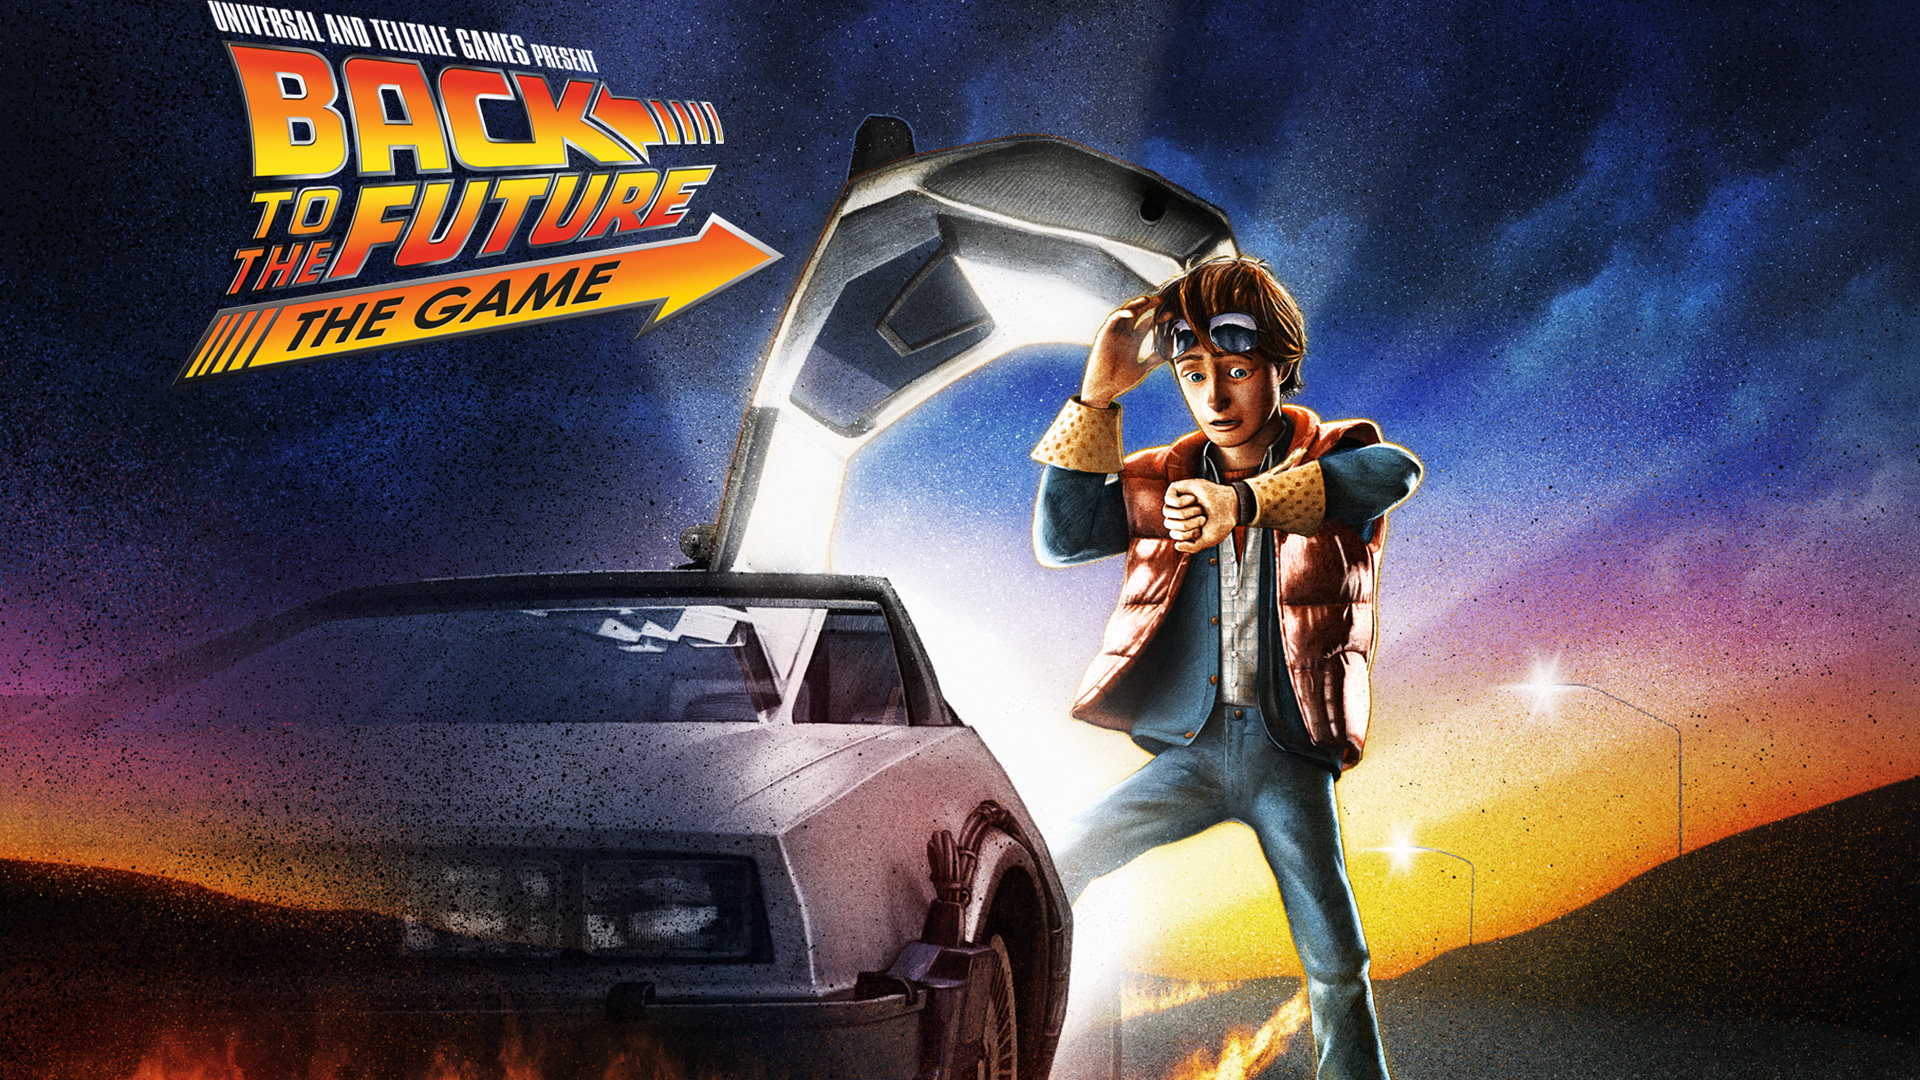 Back To The Future The Game Hd Wallpaper Background Image